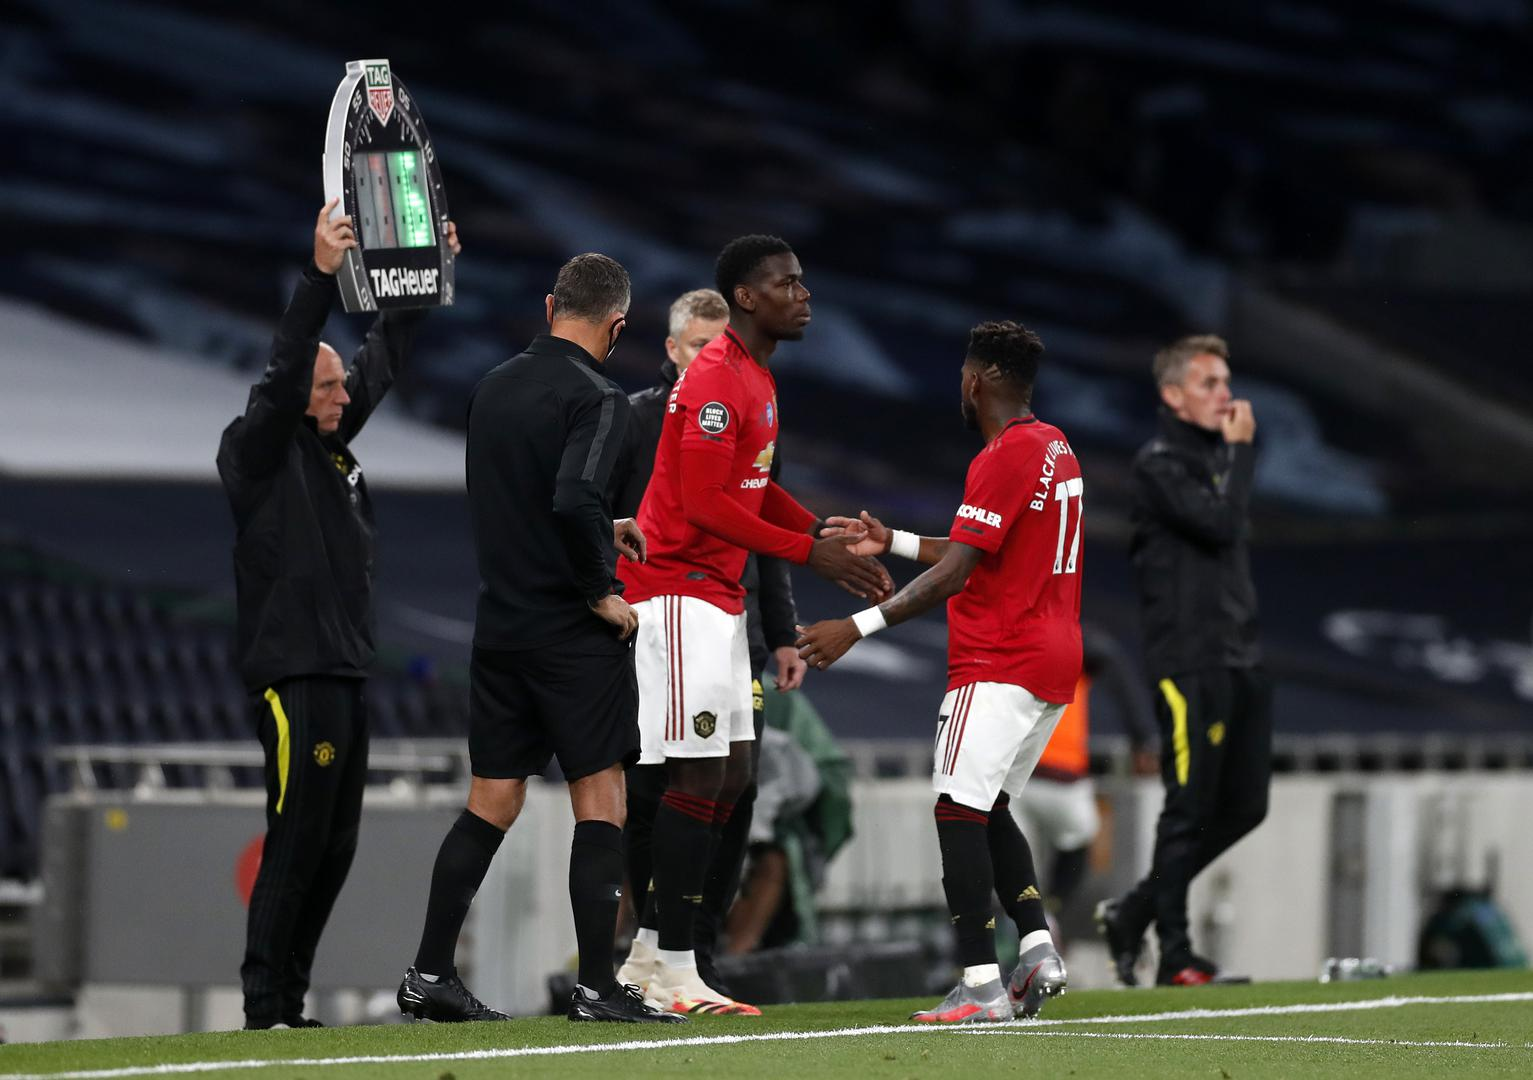 Paul Pogba comes on for Fred as a substitute at Tottenham Hotspur Stadium.